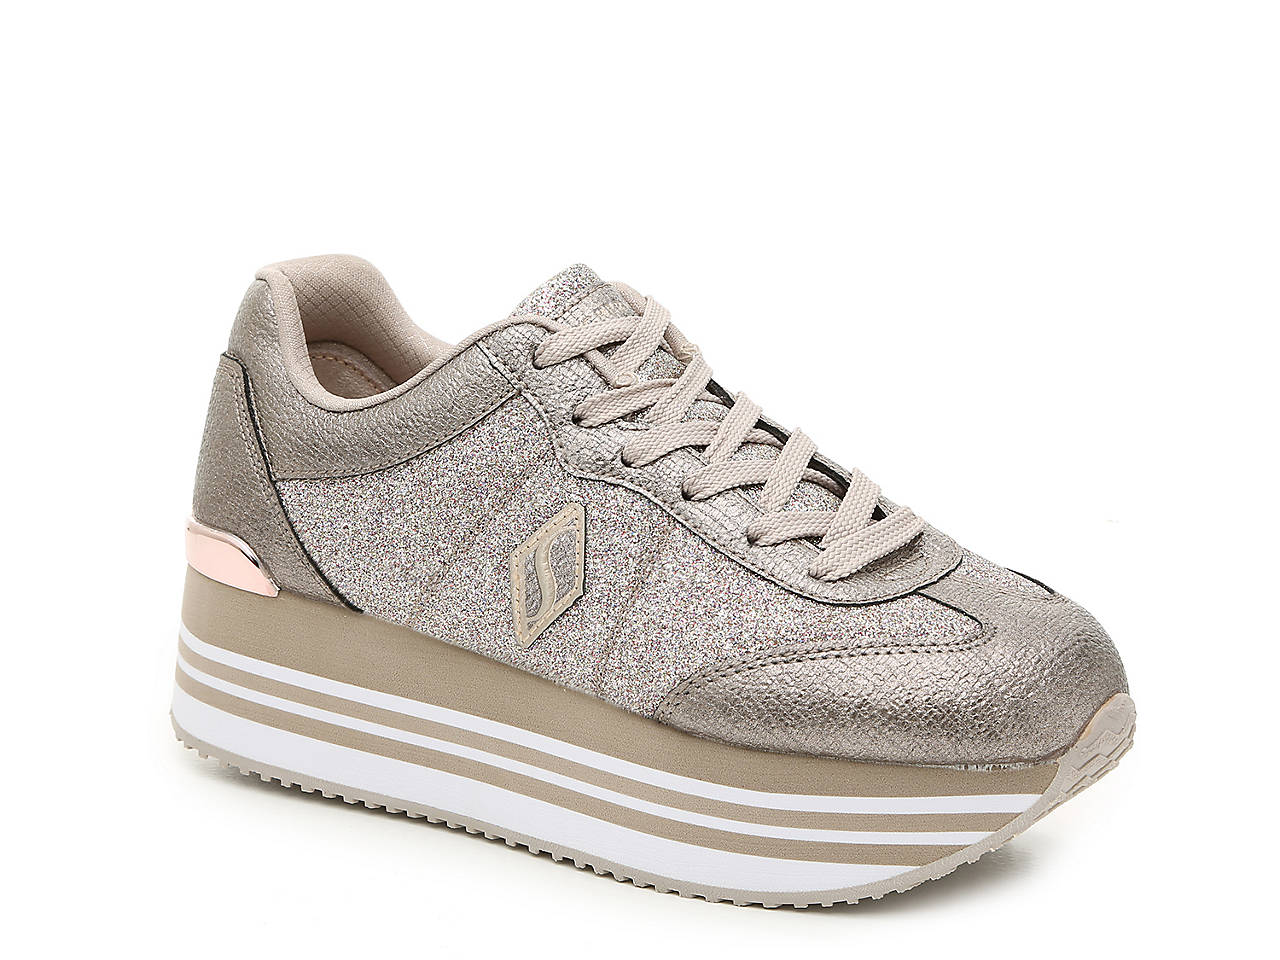 c58a2156f09b Skecher Street Highrise High Flashion Platform Sneaker Women s Shoes ...